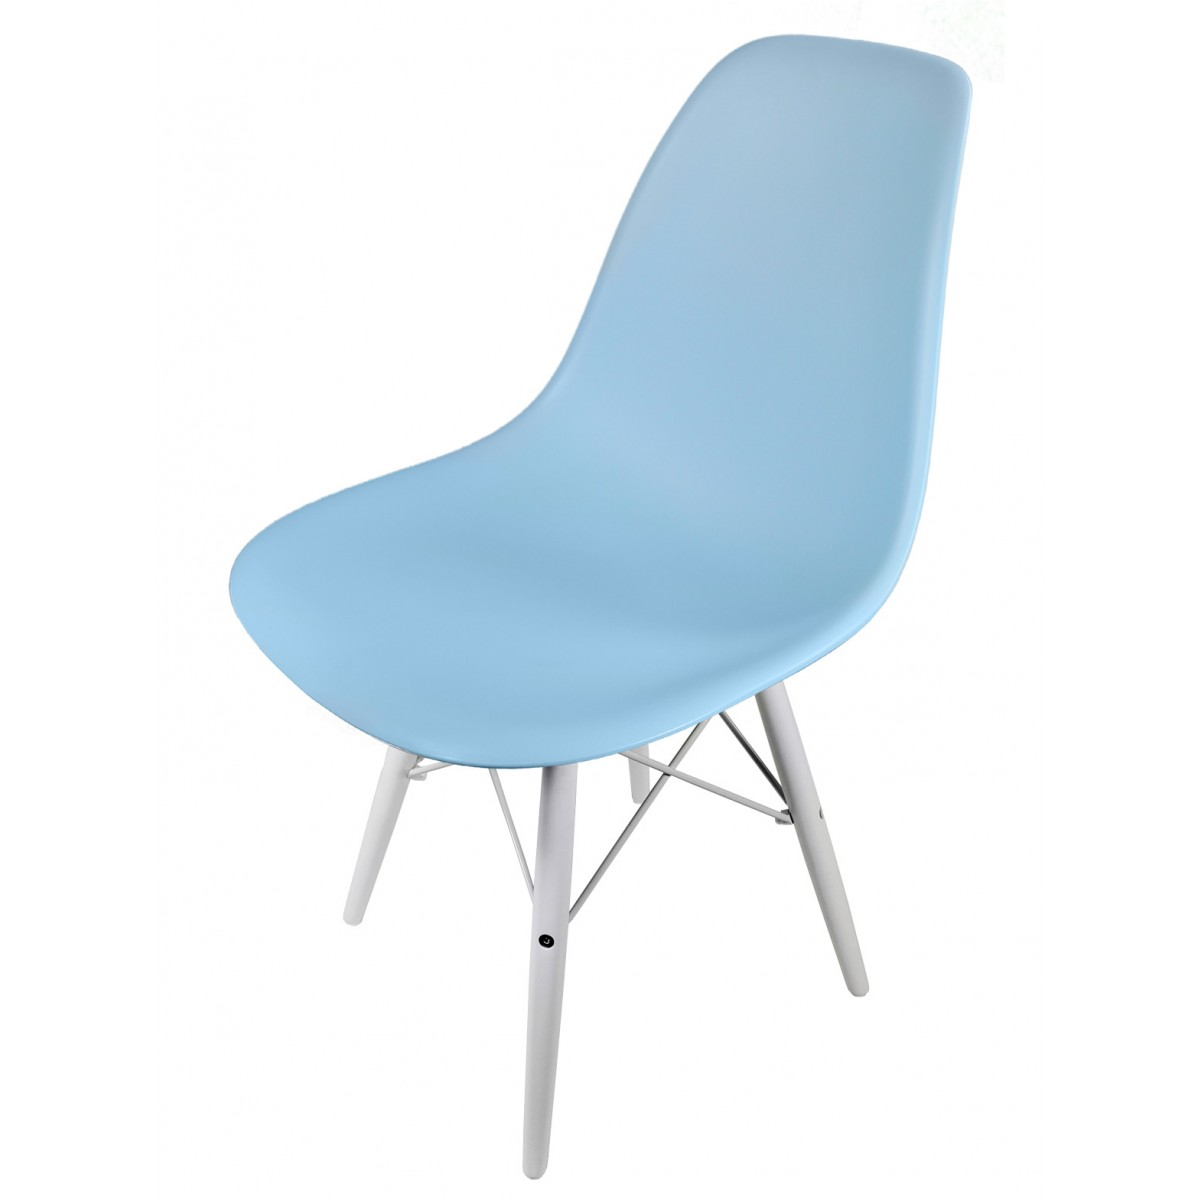 Eames chair white plastic - Regular Price 375 00